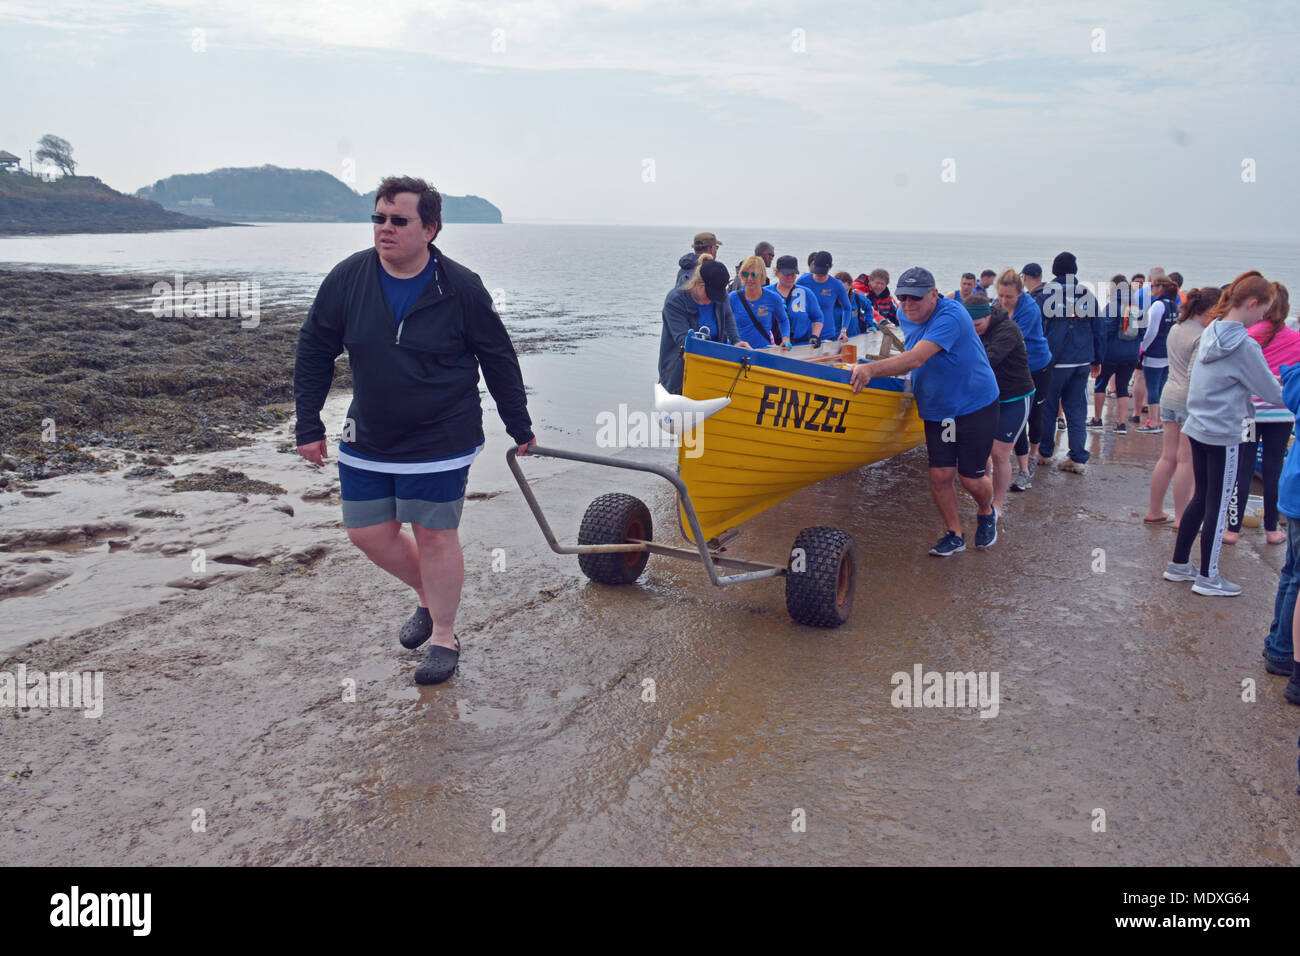 North Somerset, UK. 21st April, 2018.  A team of rowers in boat called Finzel rowed from Bristol Marina to Clevedon seafront. They set off at 10.30 and arrived at 13.20 approx having covered 15miles with plenty of excitment on the way coming round Portishead with large shipping boats in the channel. Robert Timoney/Alamy/Live/News Credit: Robert Timoney/Alamy Live News - Stock Image